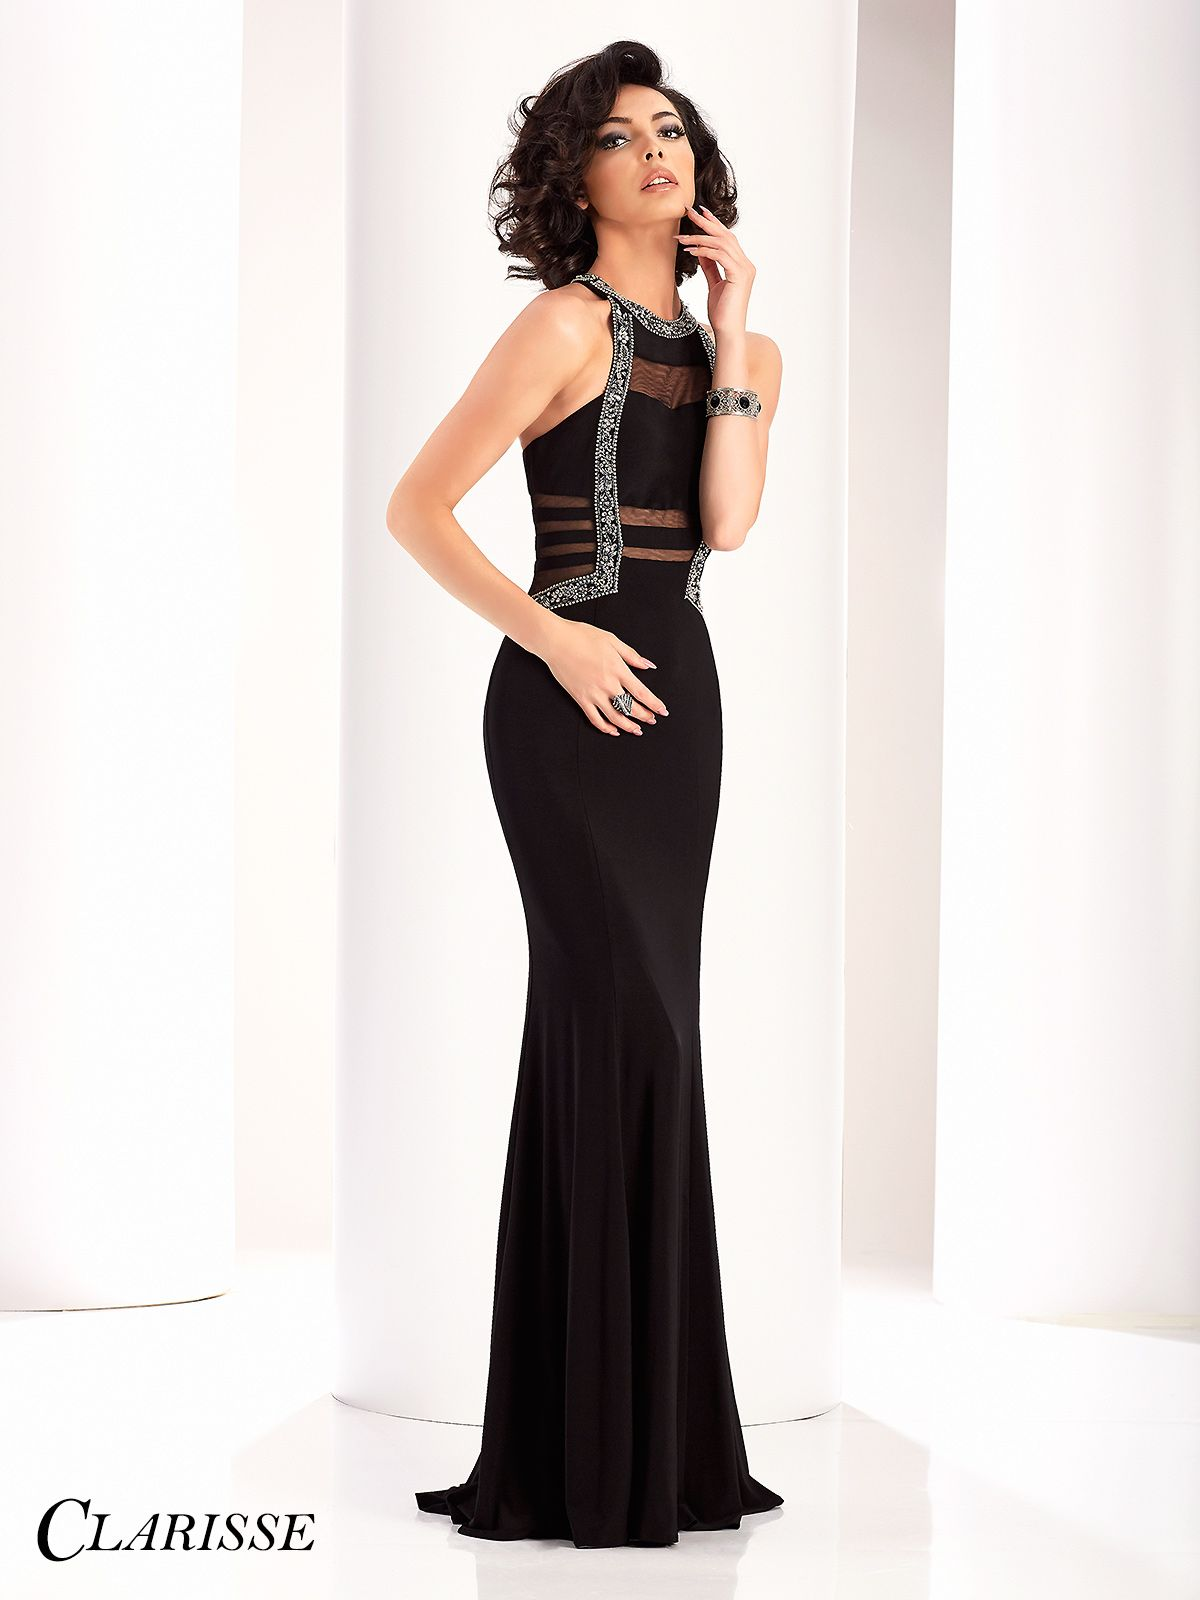 0d873d75bd1 Clarisse Couture Sparkling Cutout Prom Dress 4803. Beautiful tight fitted  black prom dress for 2017.